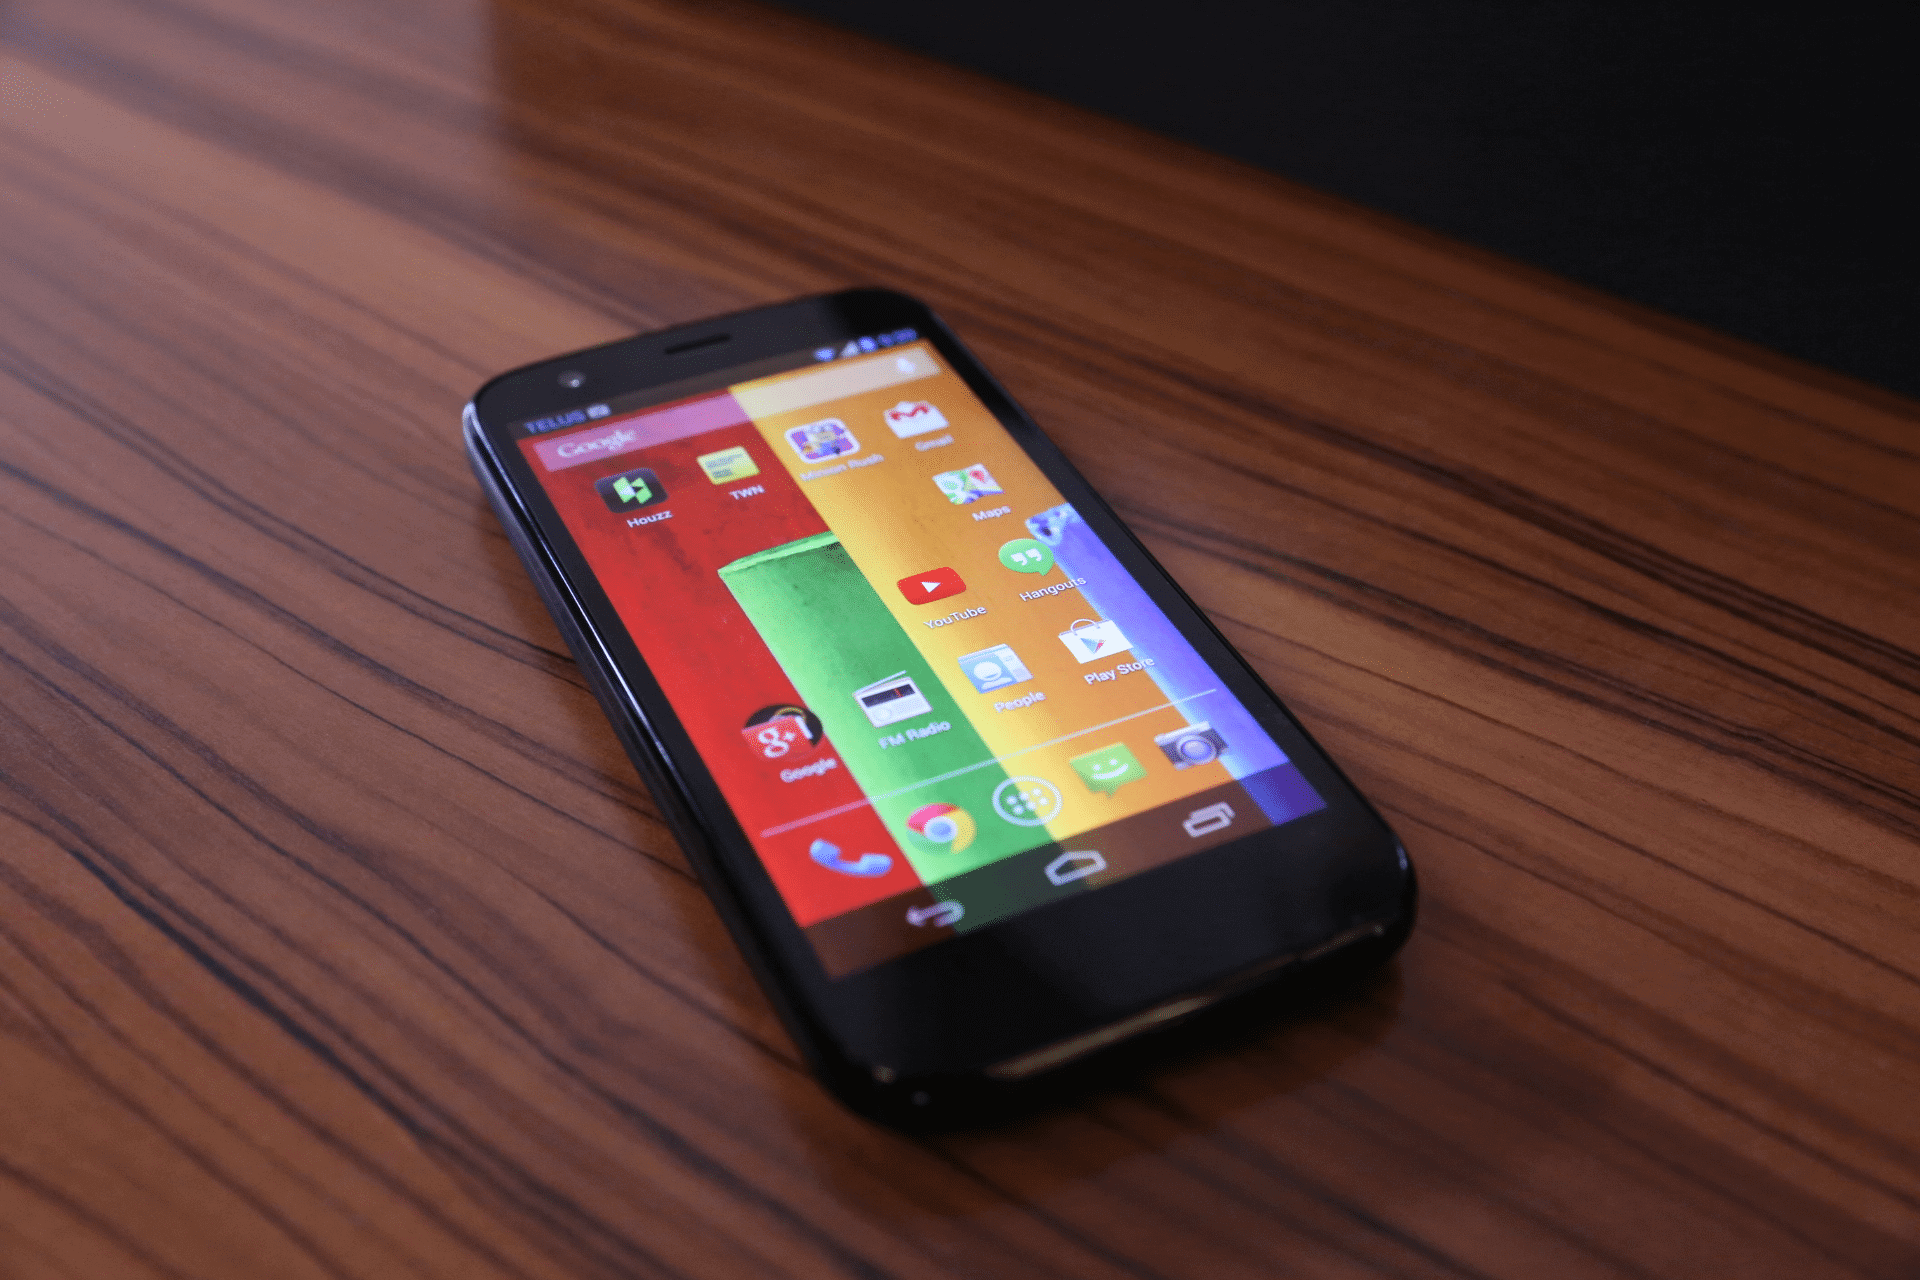 MOTO G 2013 Updated Android 8.0 Oreo Lineage OS 15 ROM 11